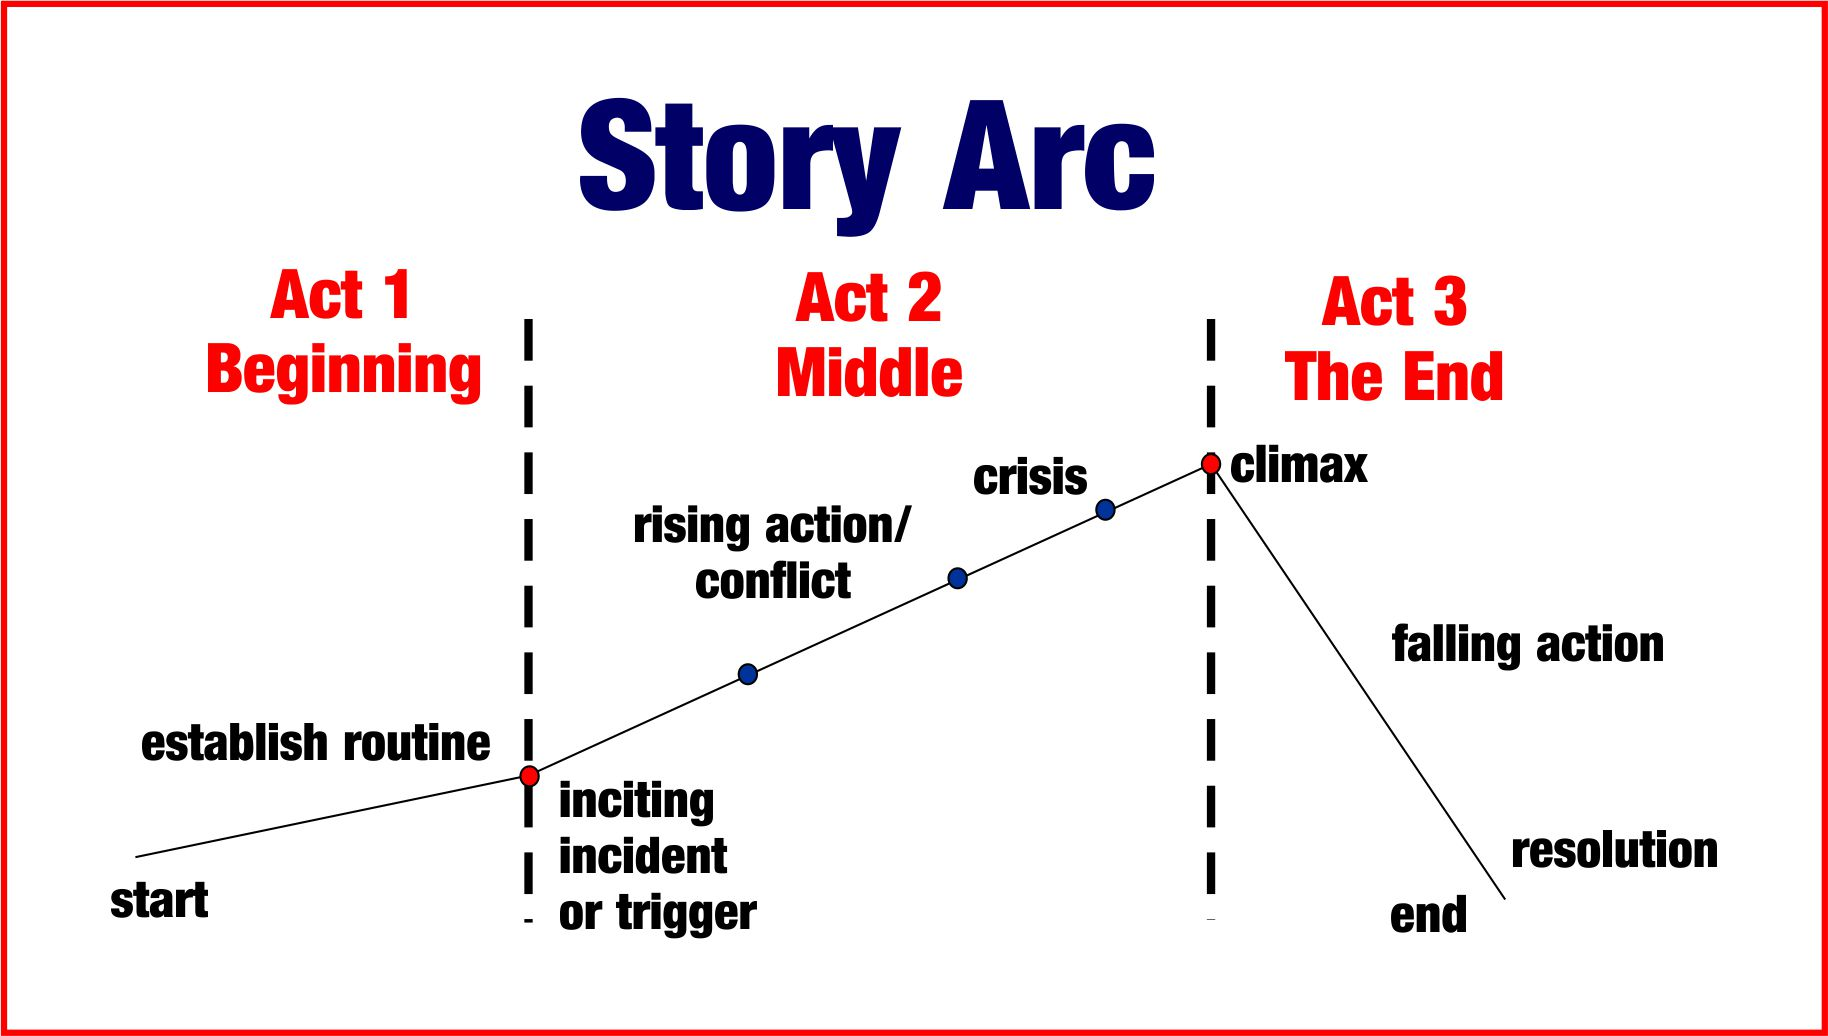 story arc template susan leigh noble 39 s blog following a story arc